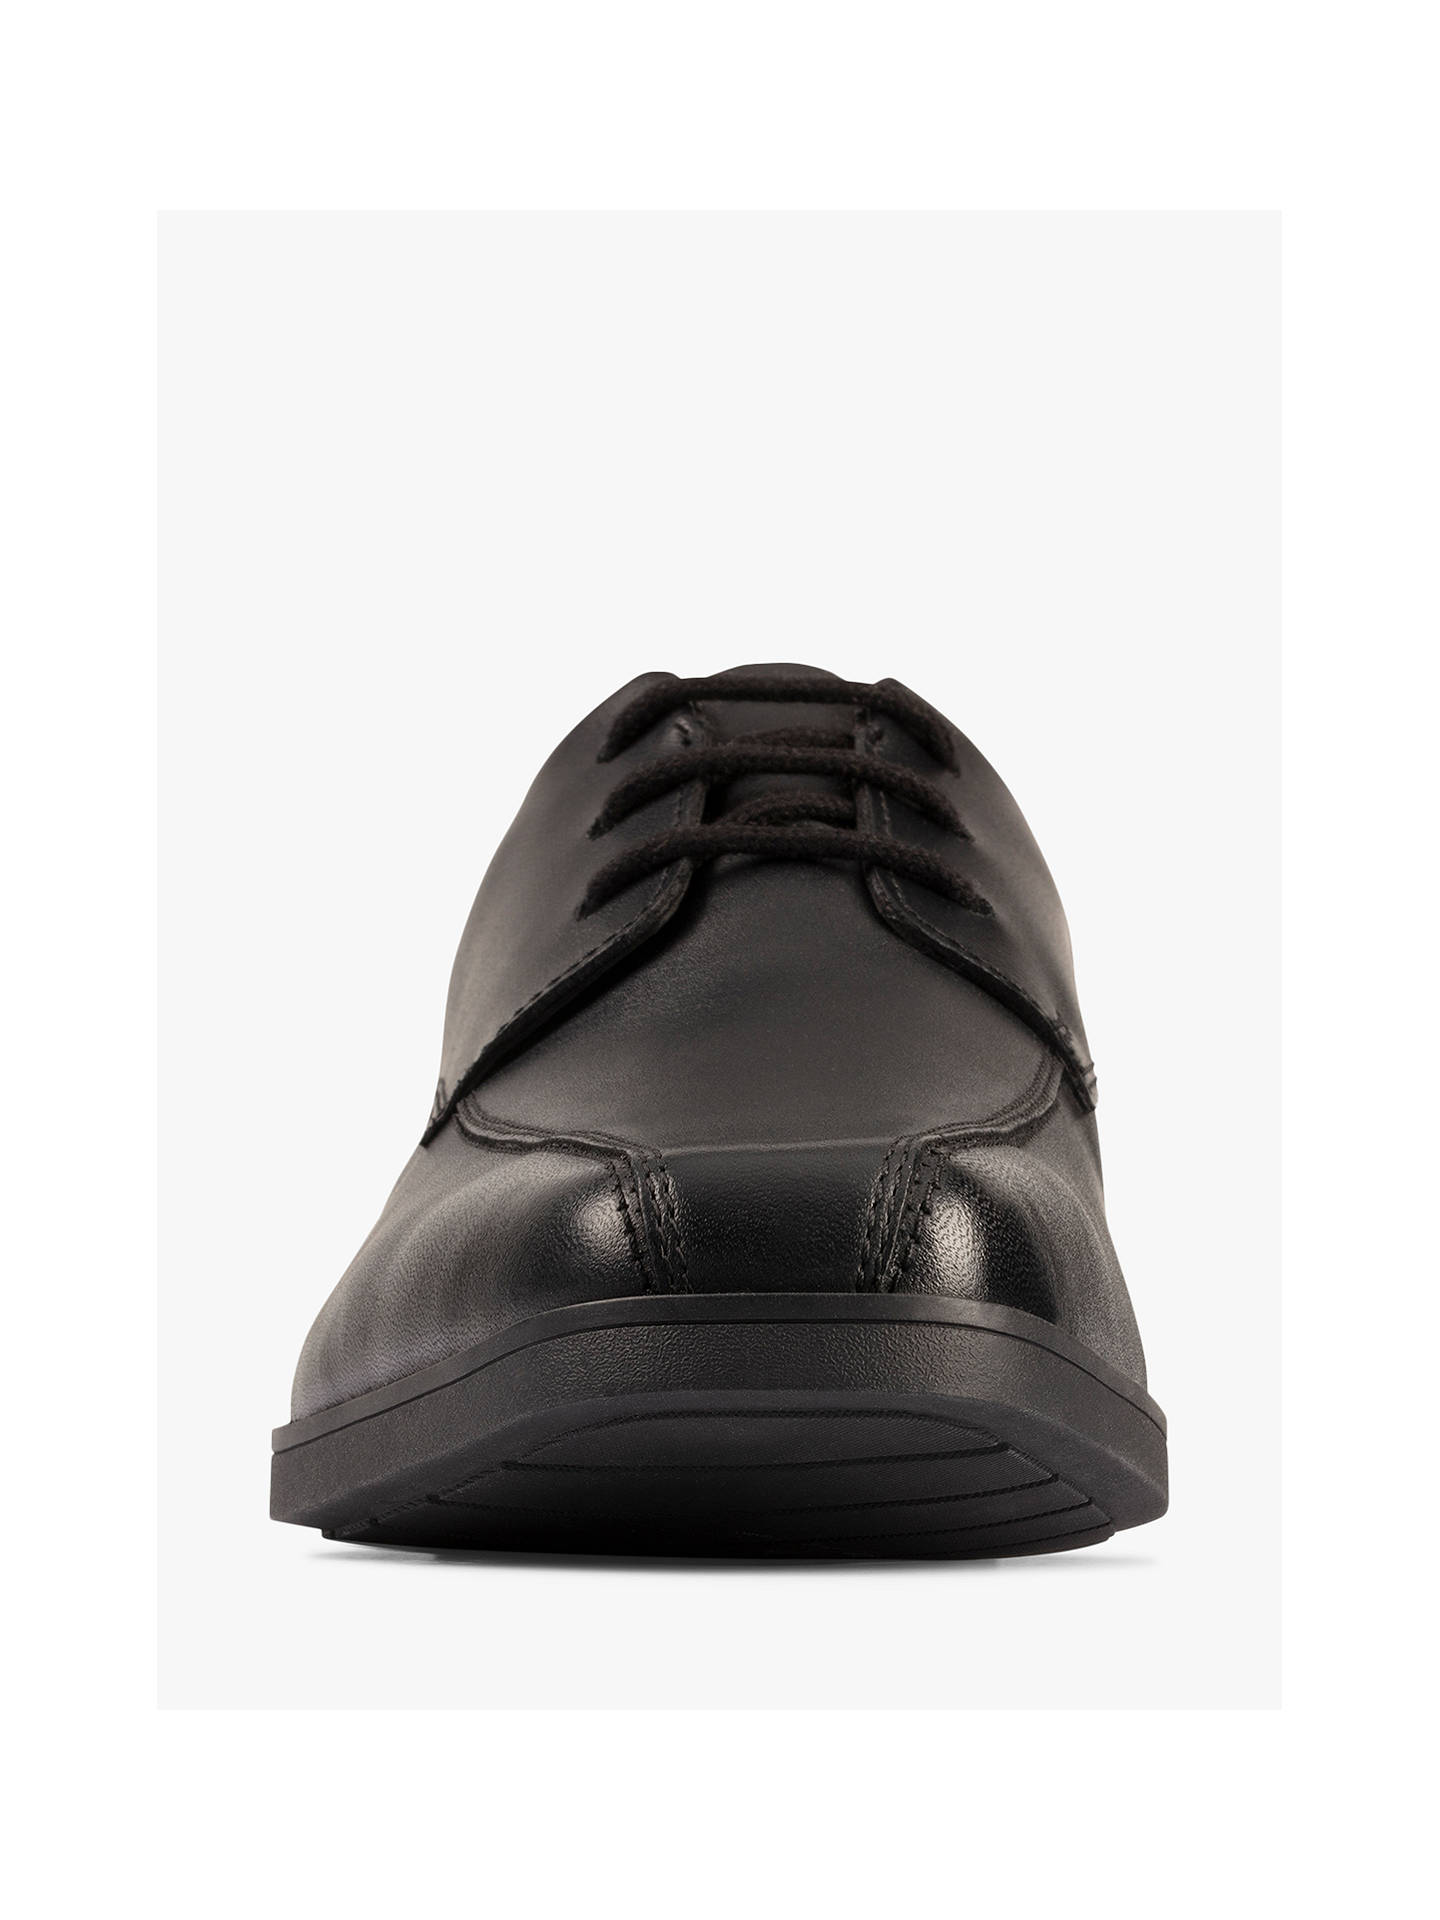 Buy Clarks Children's Scala Loop Youth Shoes, Black Leather, 3F Online at johnlewis.com